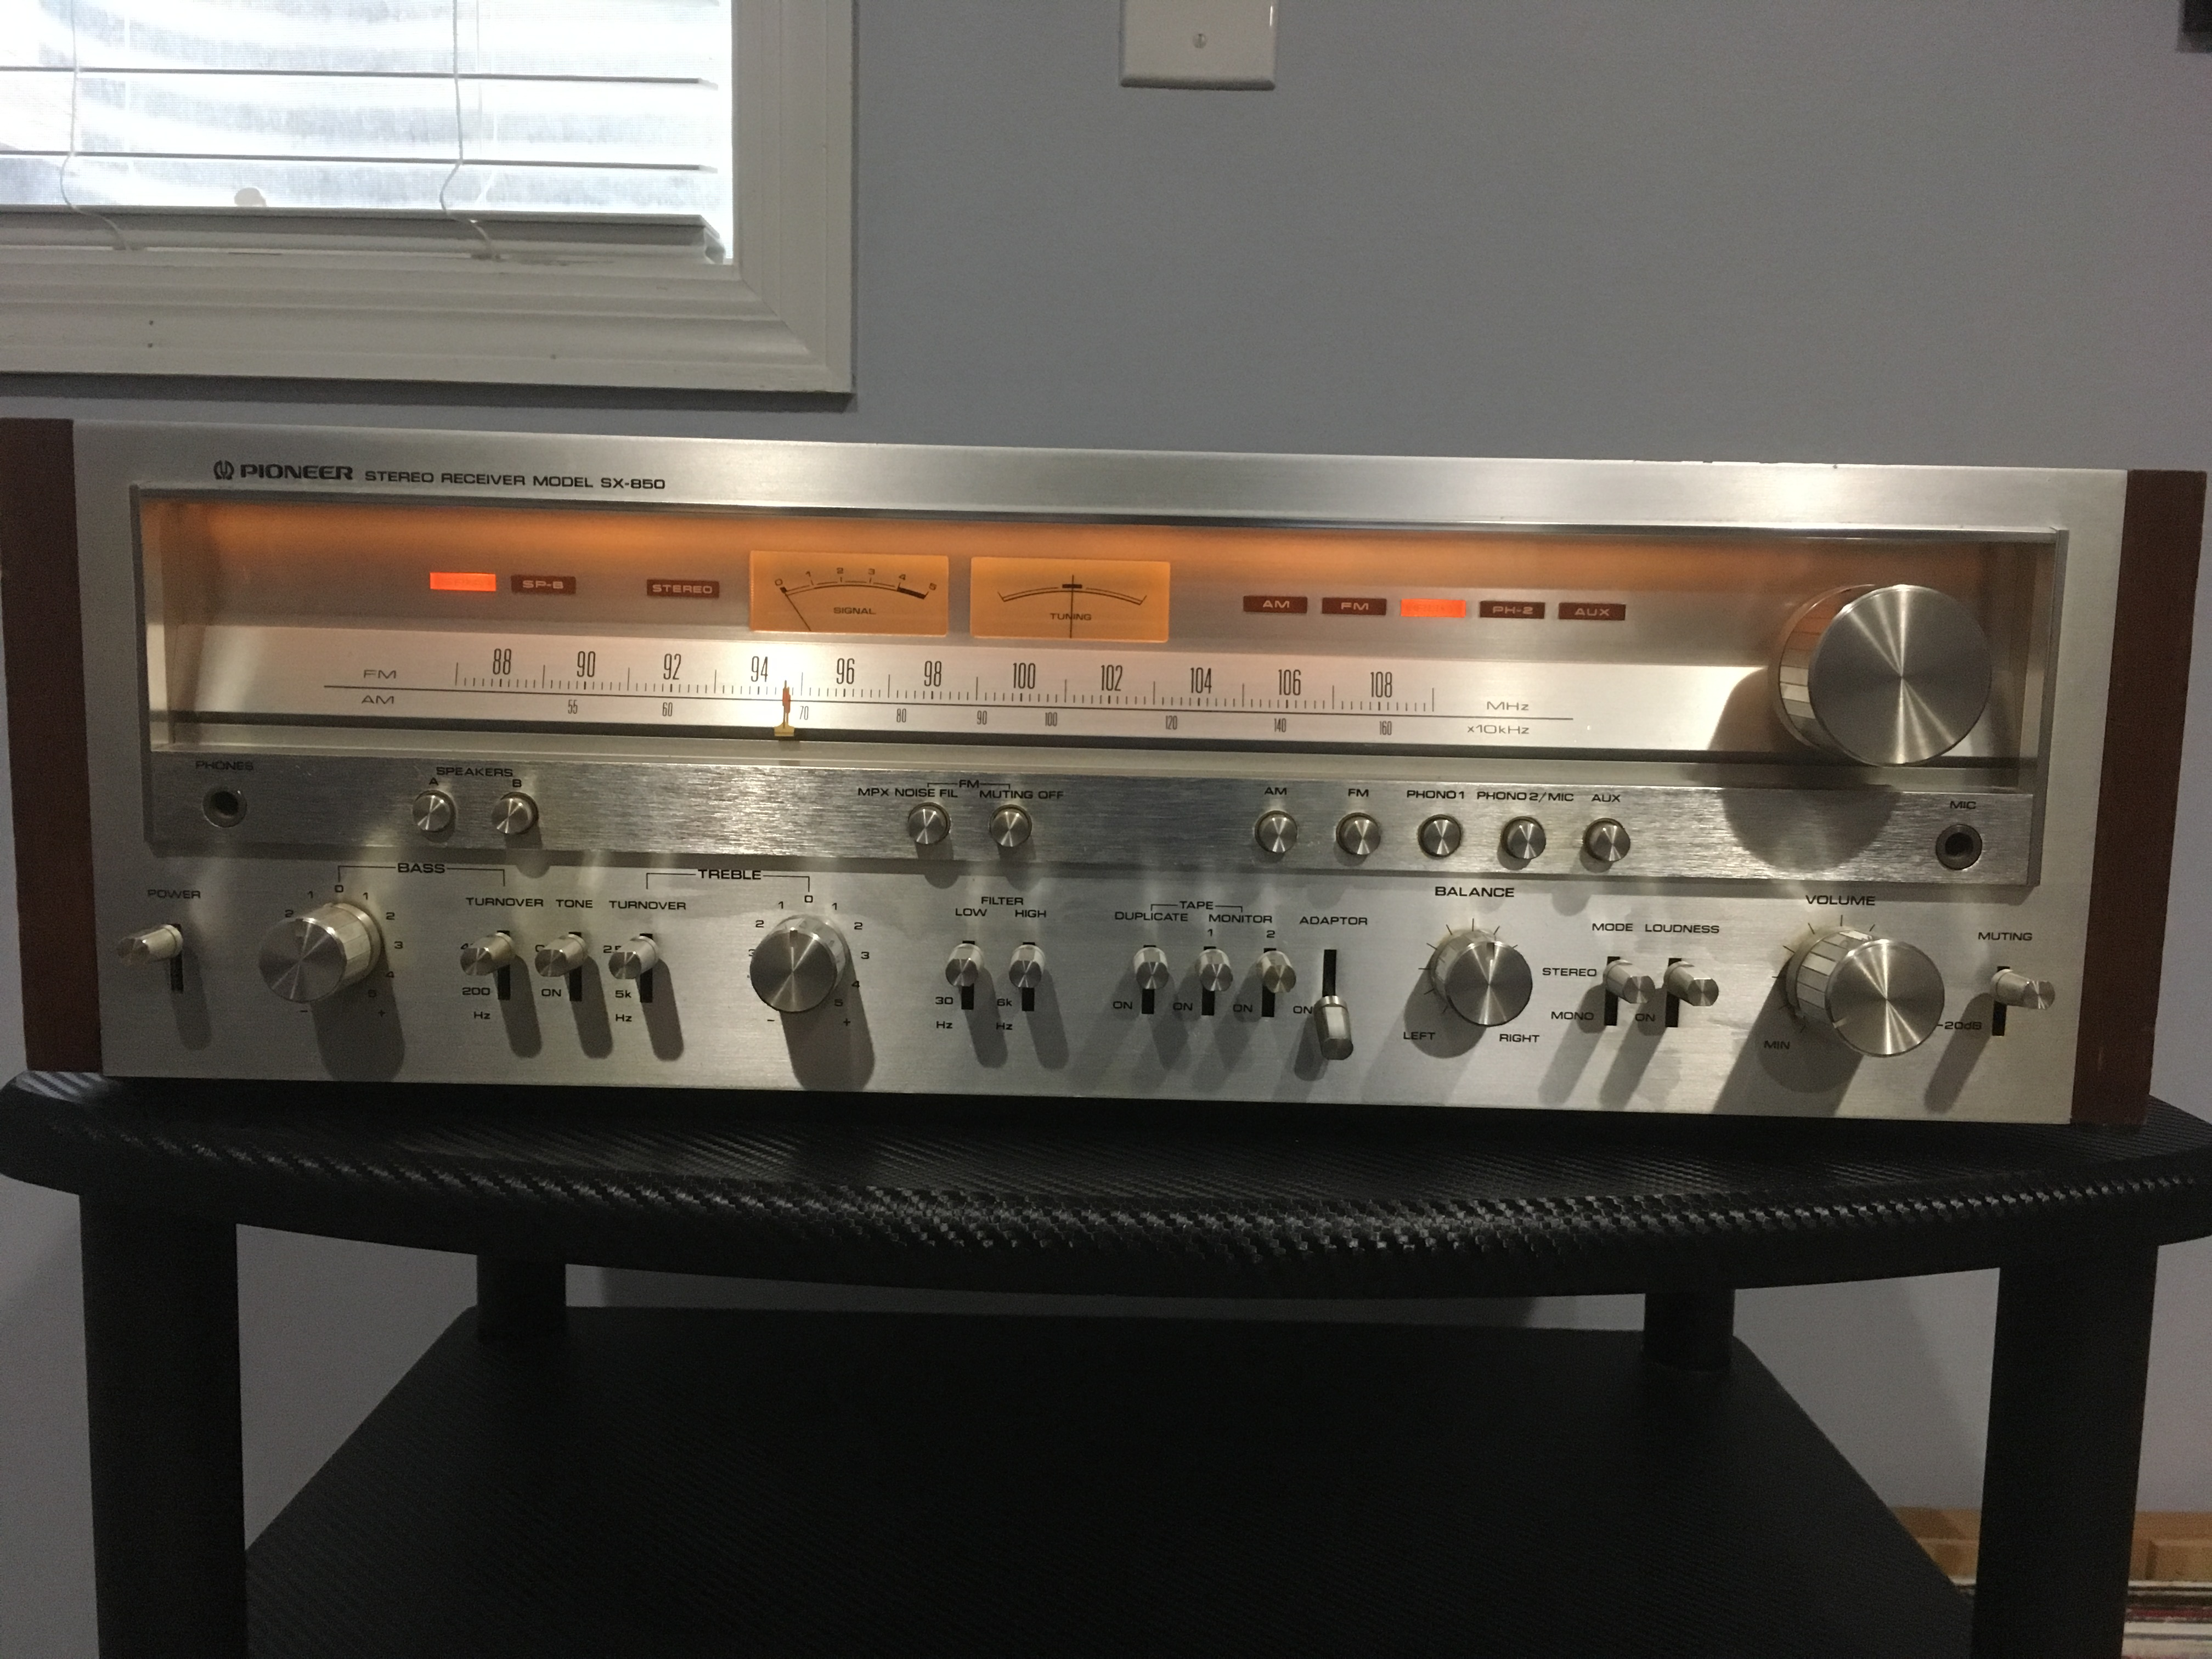 Pioneer SX - 850 Stereo Receiver